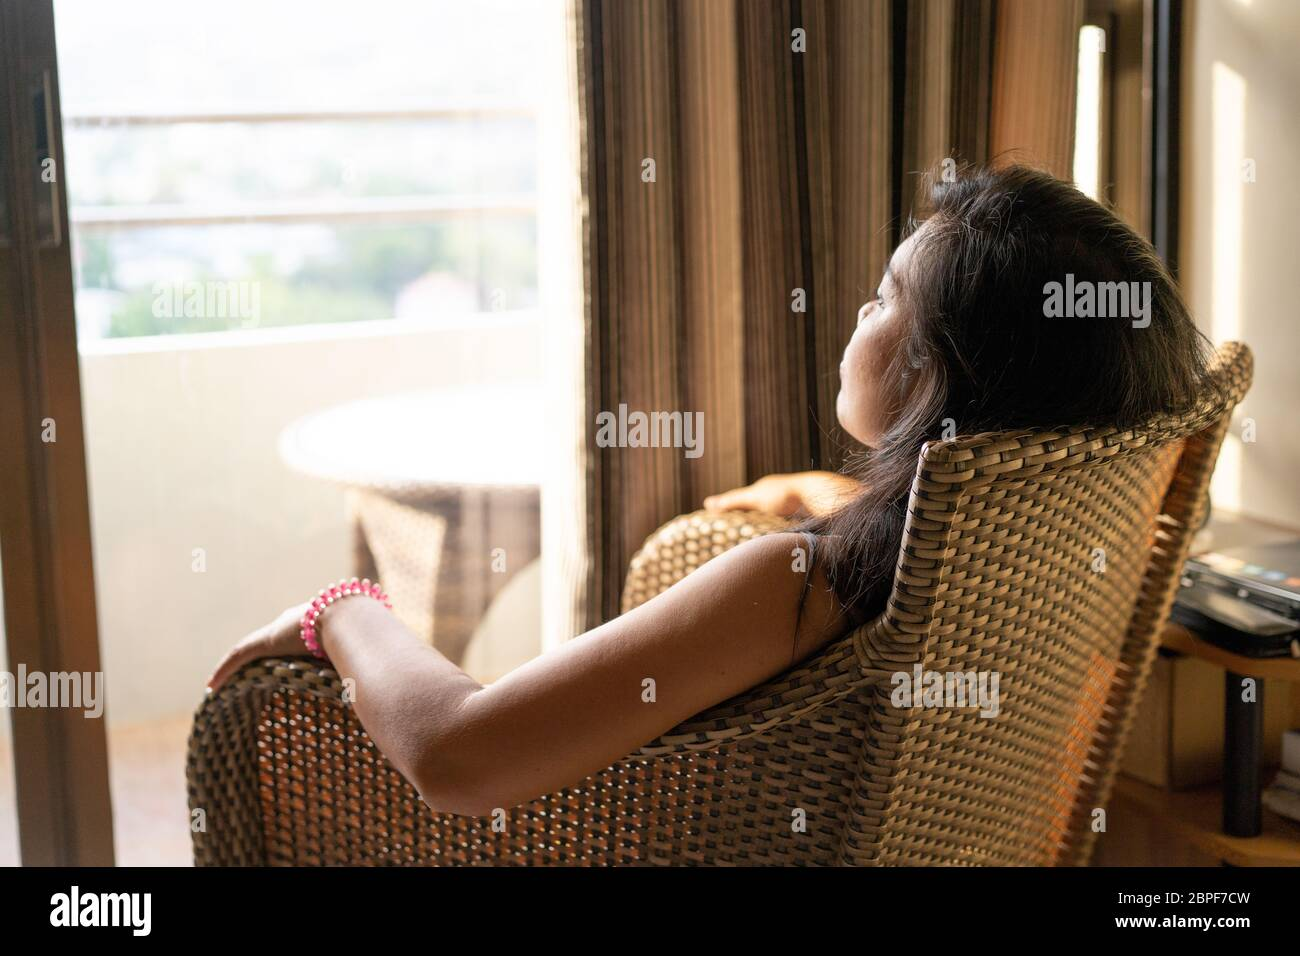 Concept image of the issues surrounding mental health.A woman sitting in a chair stares out of an open window during a quarantine period in the COVID-19 Pandemic 2020 Stock Photo